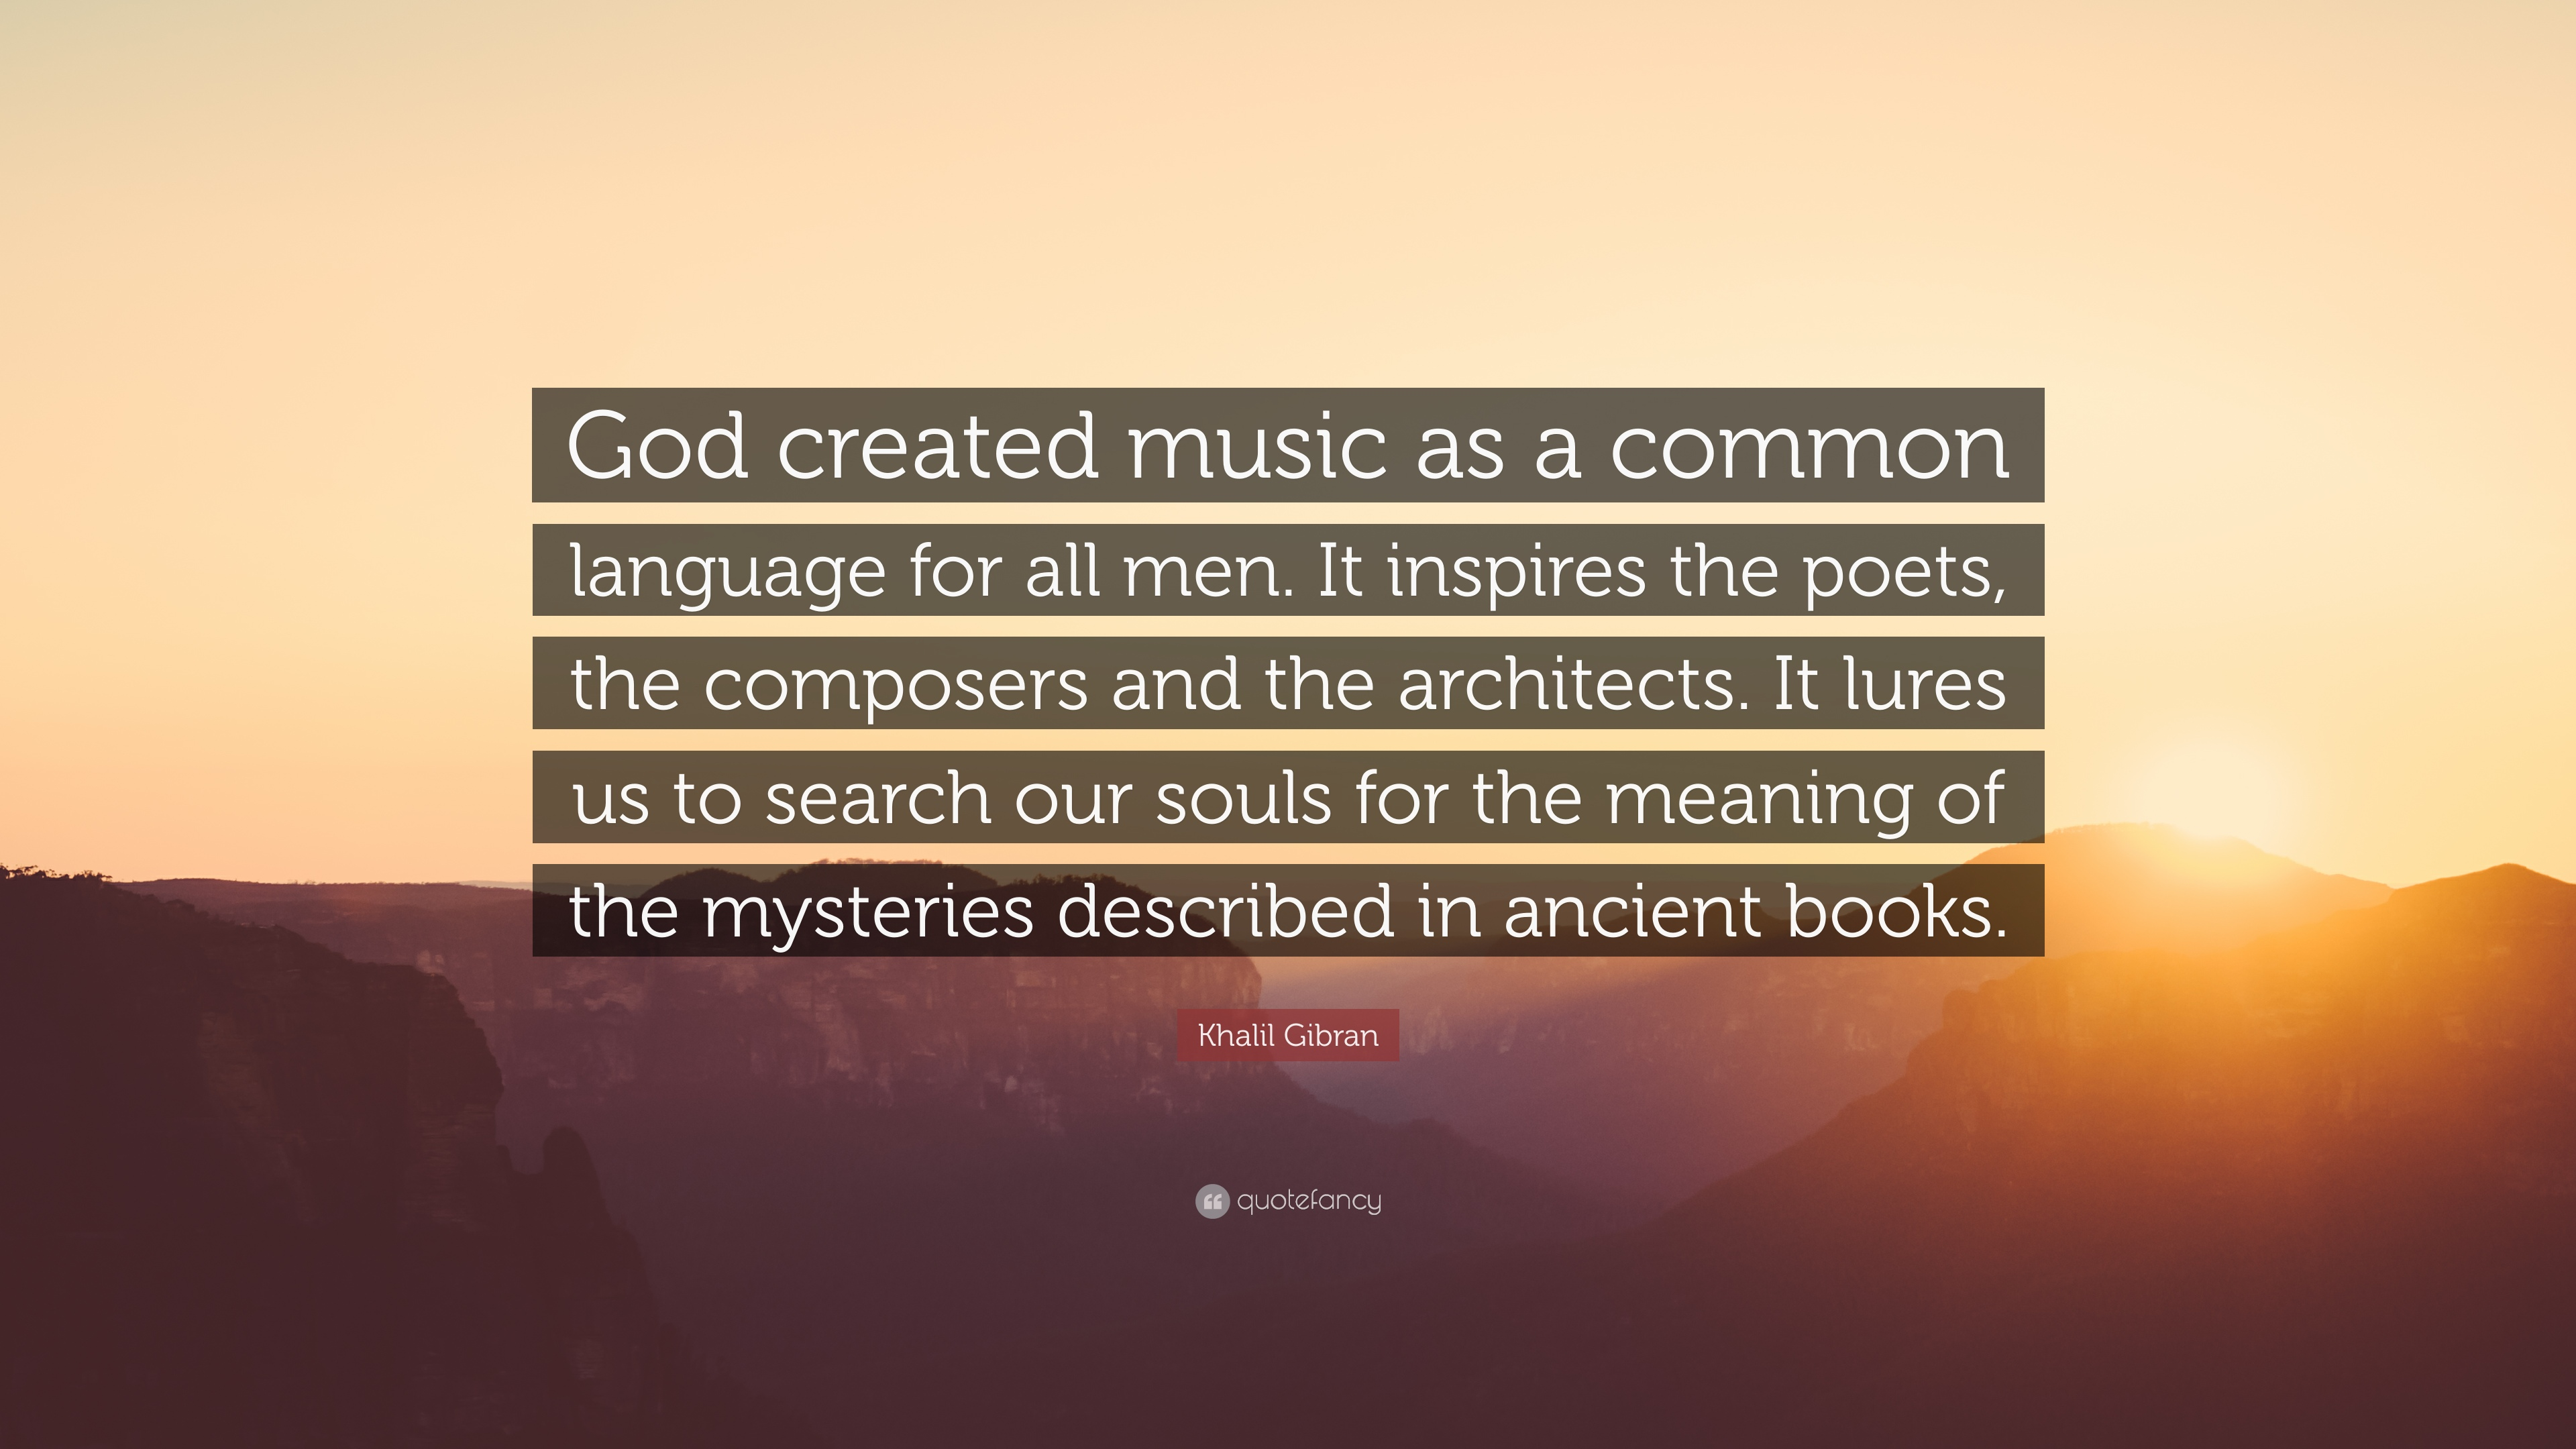 Common Language Caring Khalil Gibran Quote: God created music as a common language for all men.